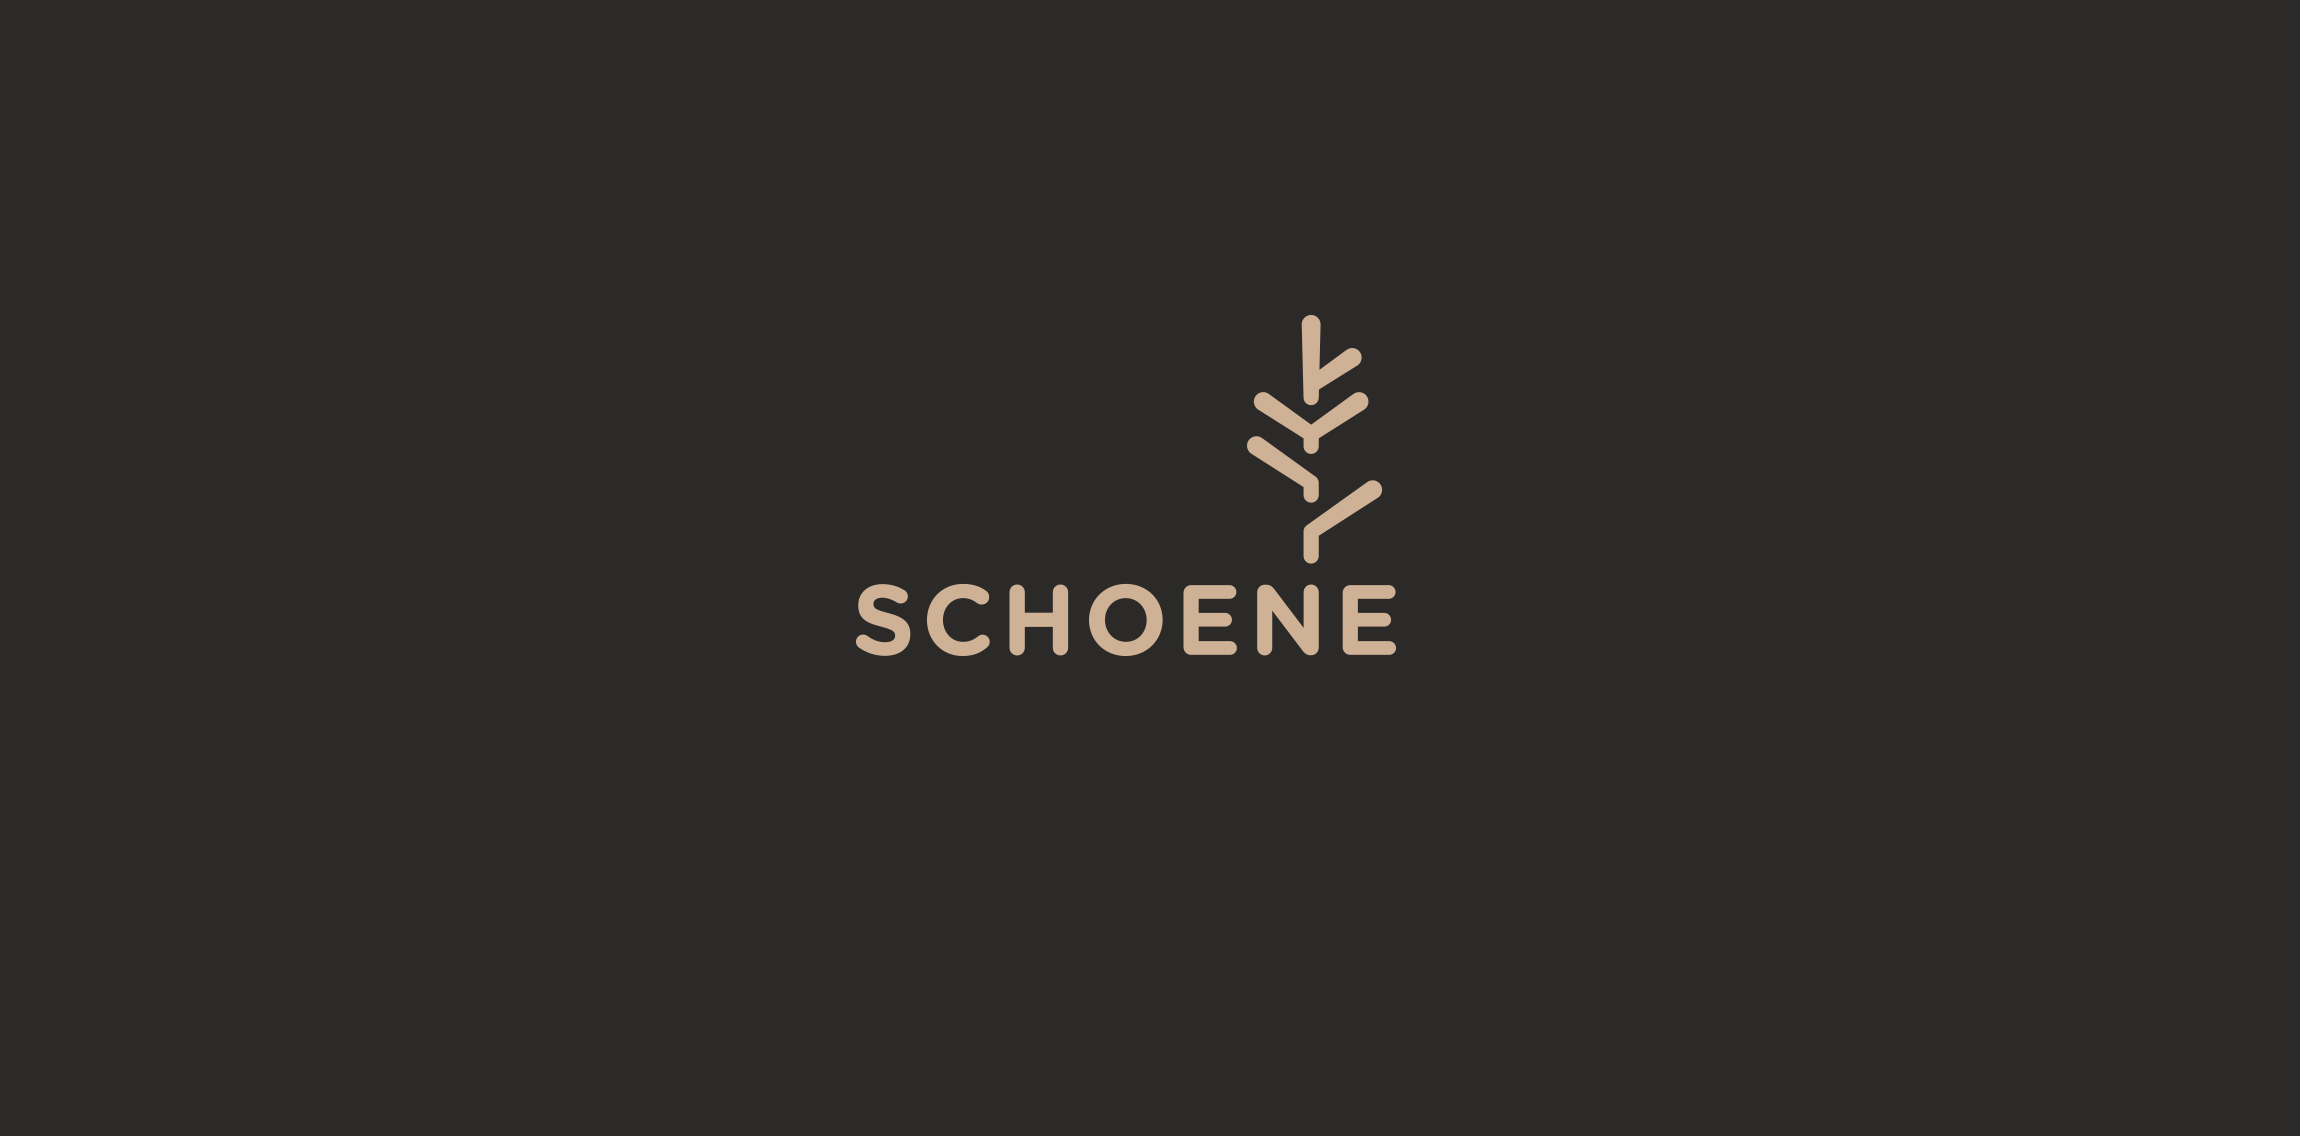 schoene logomoose logo inspiration. Black Bedroom Furniture Sets. Home Design Ideas